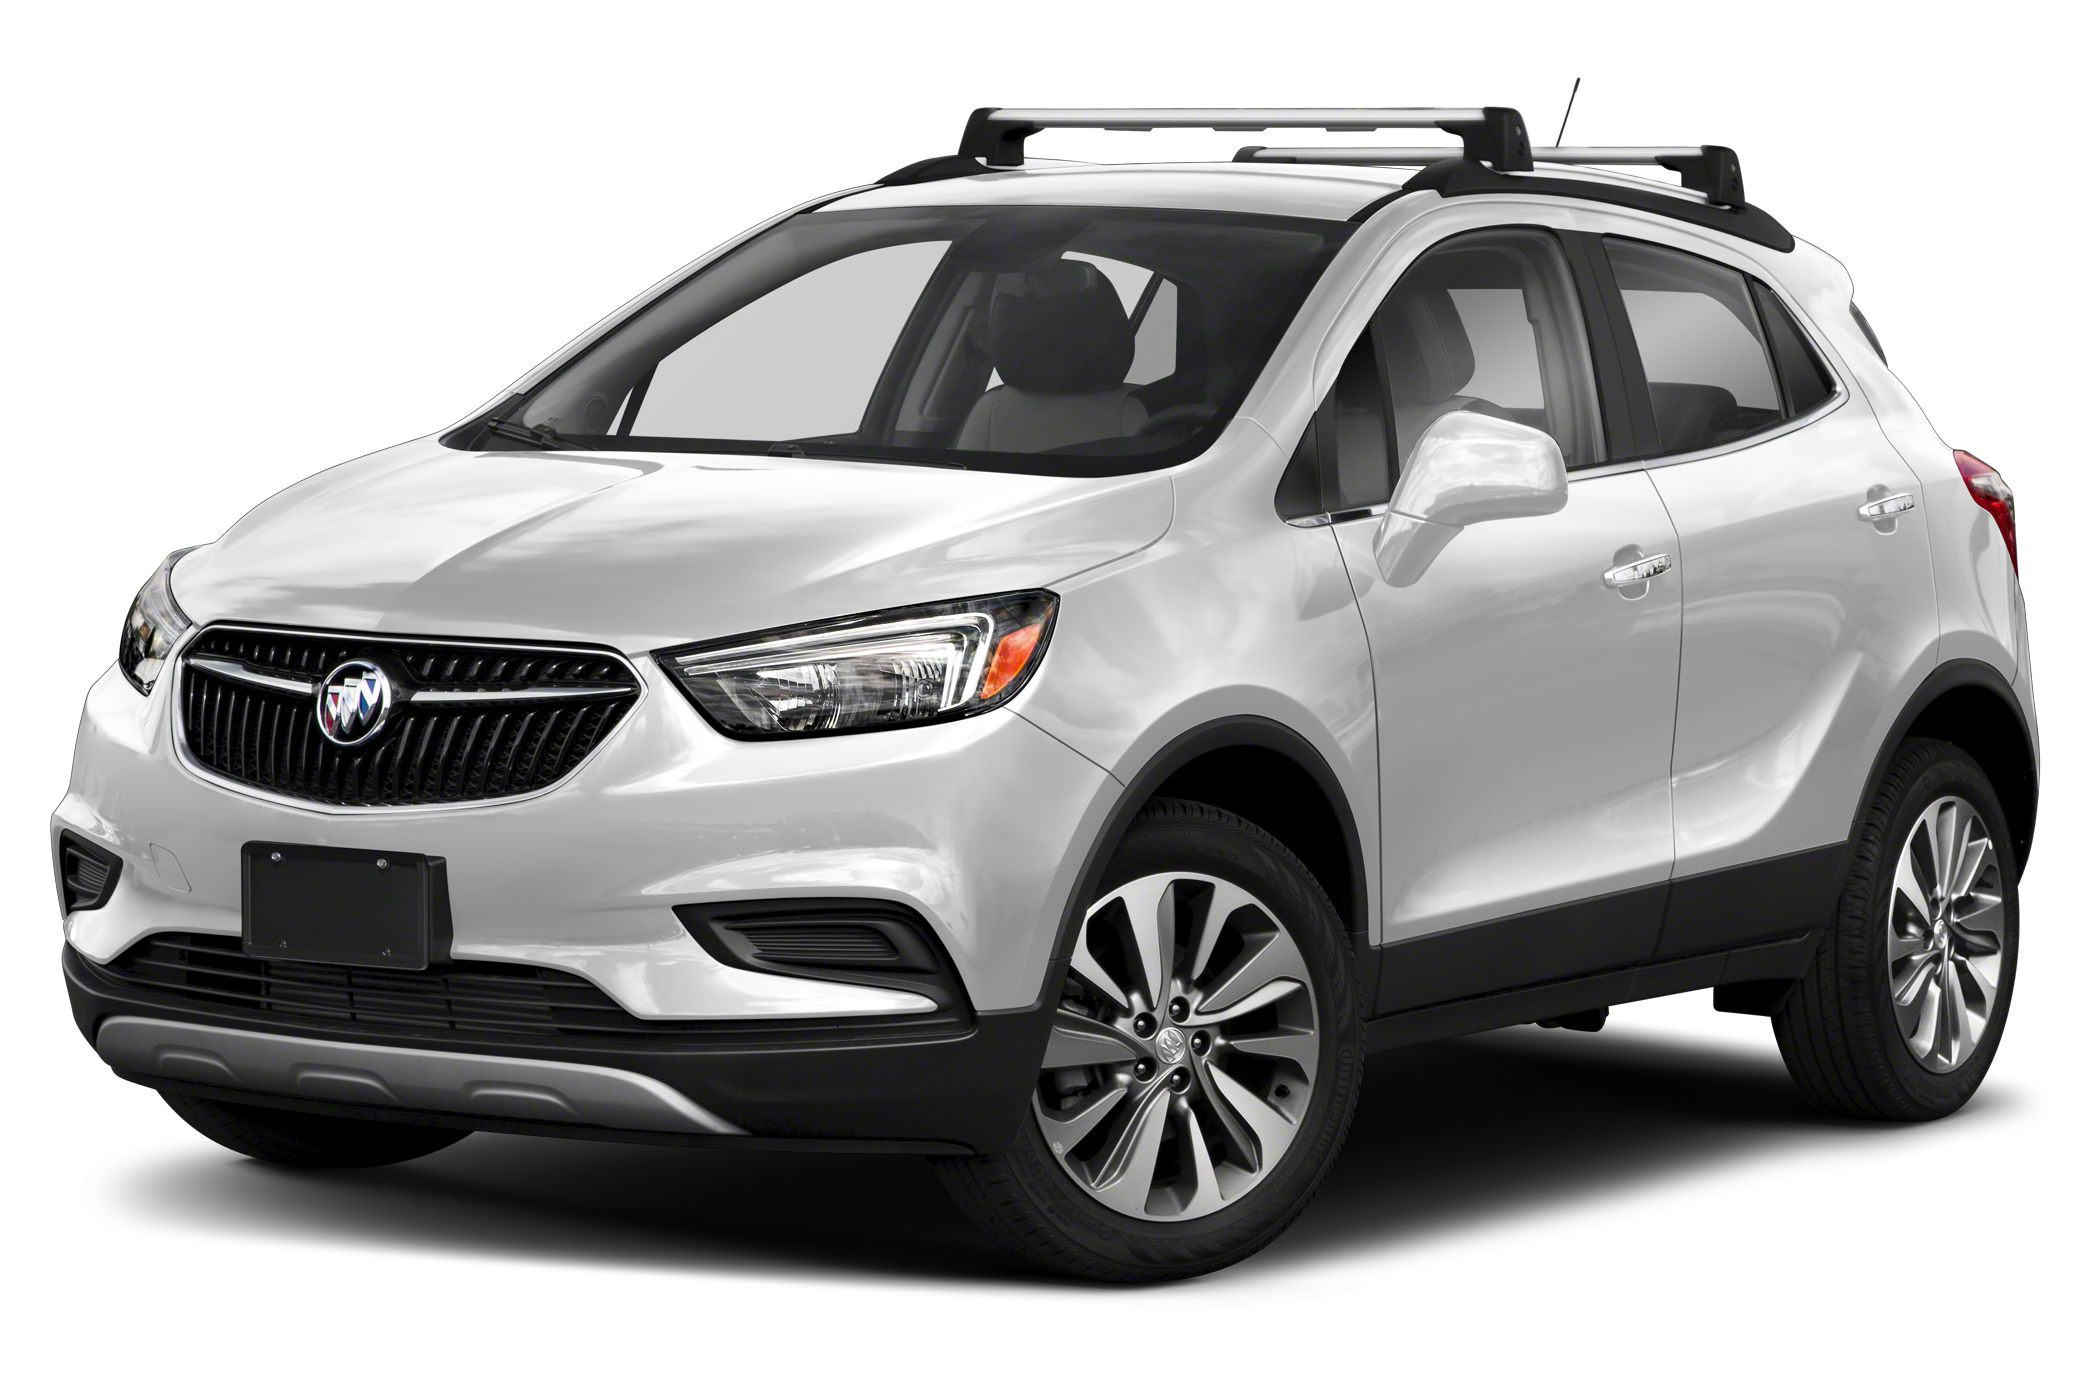 2021 Buick Encore Preferred All-Wheel Drive Specs And Prices 2021 Buick Encore Essence Engine, Awd, Msrp